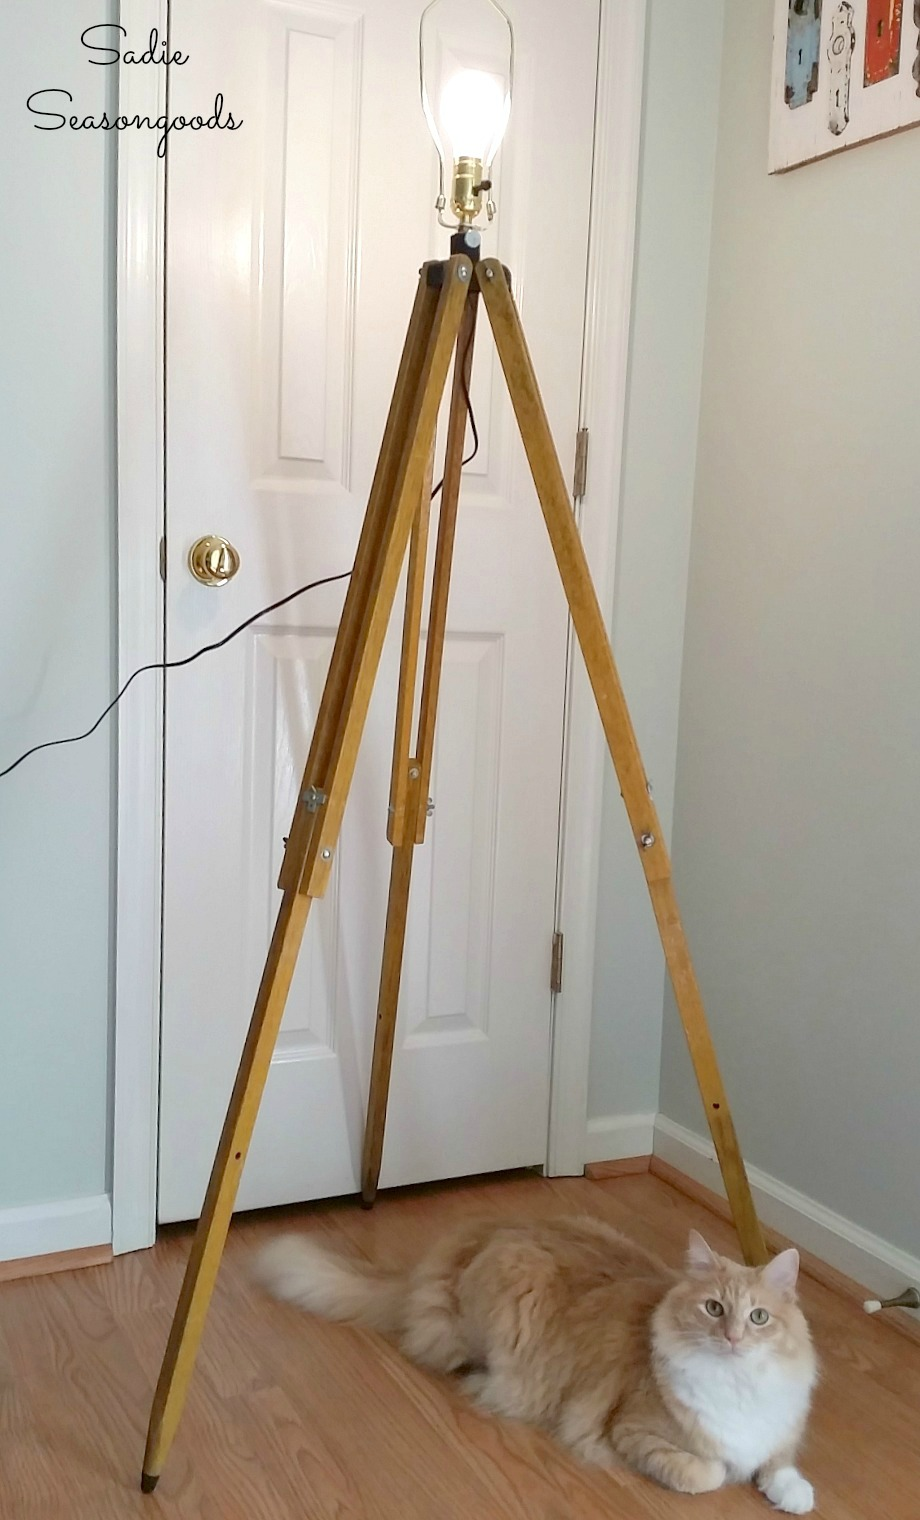 Industrial floor lamp made by wiring a lamp kit inside a surveyors tripod or wooden tripod by Sadie Seasongoods / www.sadieseasongoods.com